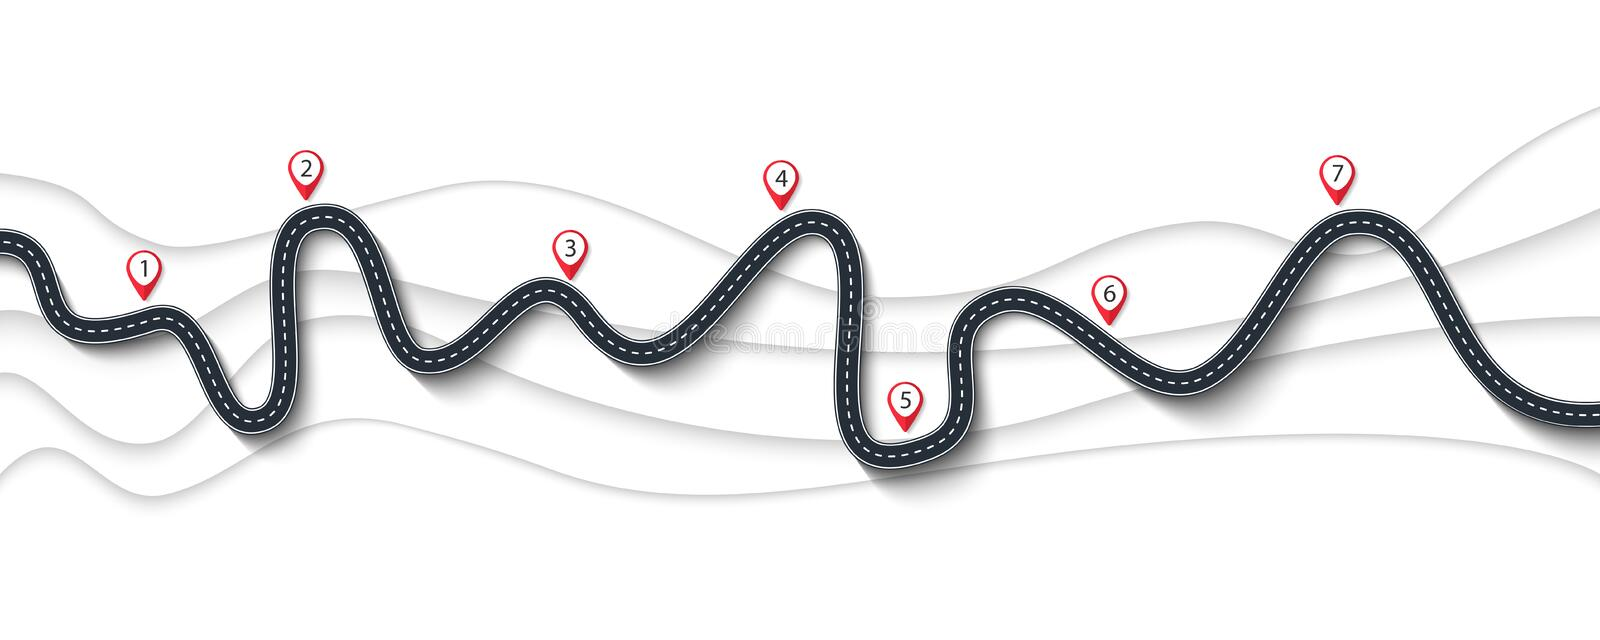 Road trip and Journey route. Winding Road on a White Background. Road trip and Journey route. Winding Road on a Colorful Background with pin pointer. Vector EPS royalty free illustration